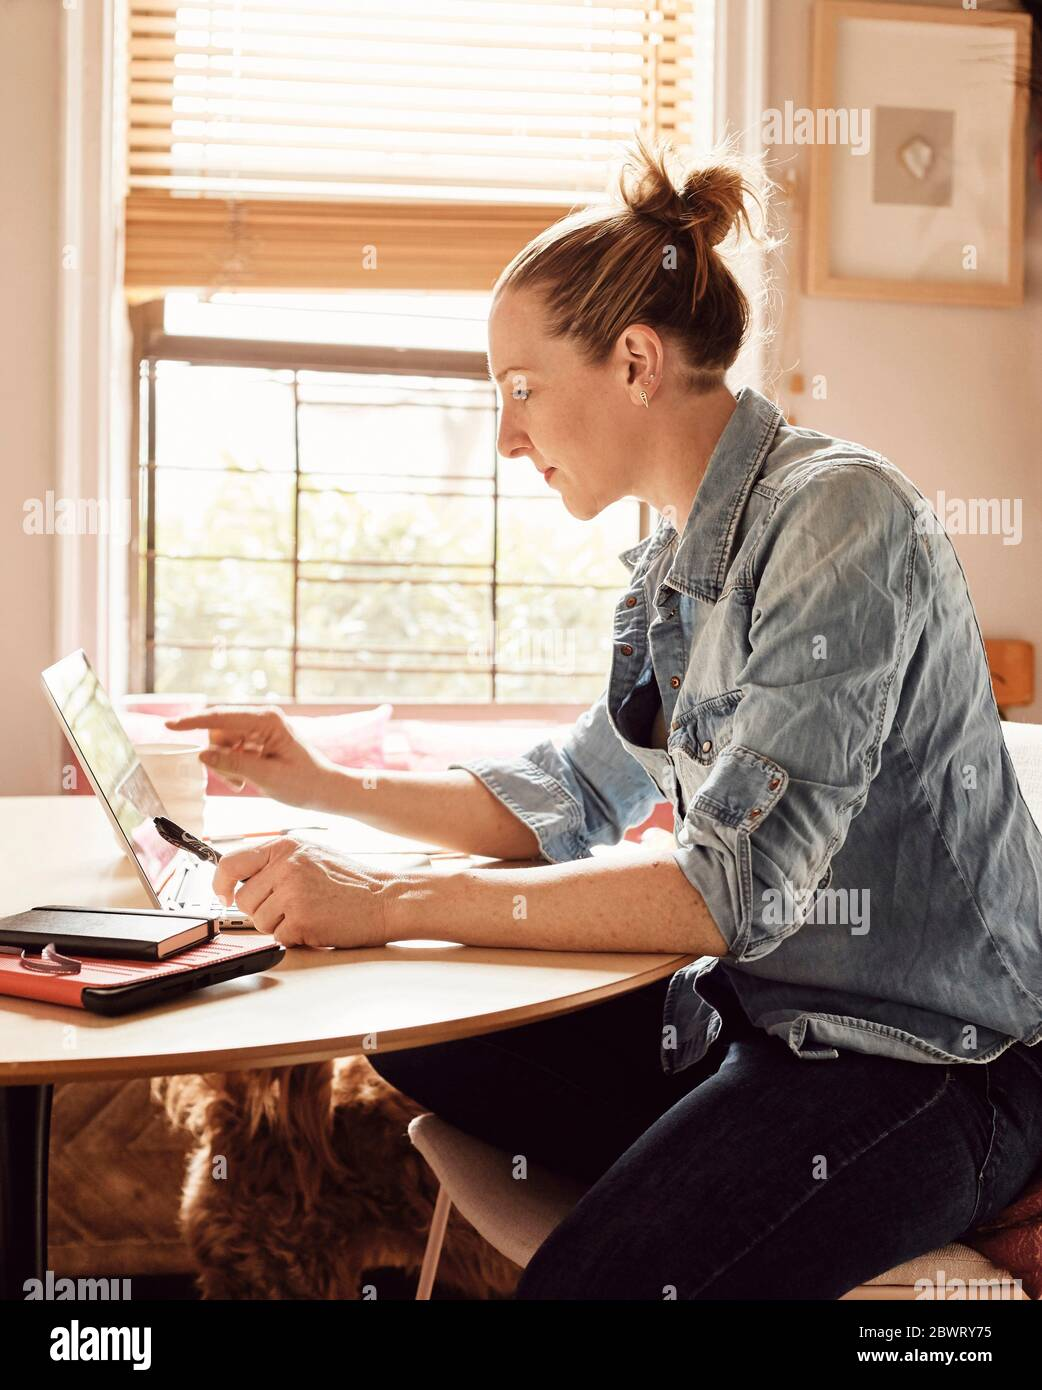 A woman working from home in her sunny kitchen, concentrating on her computer. Stock Photo